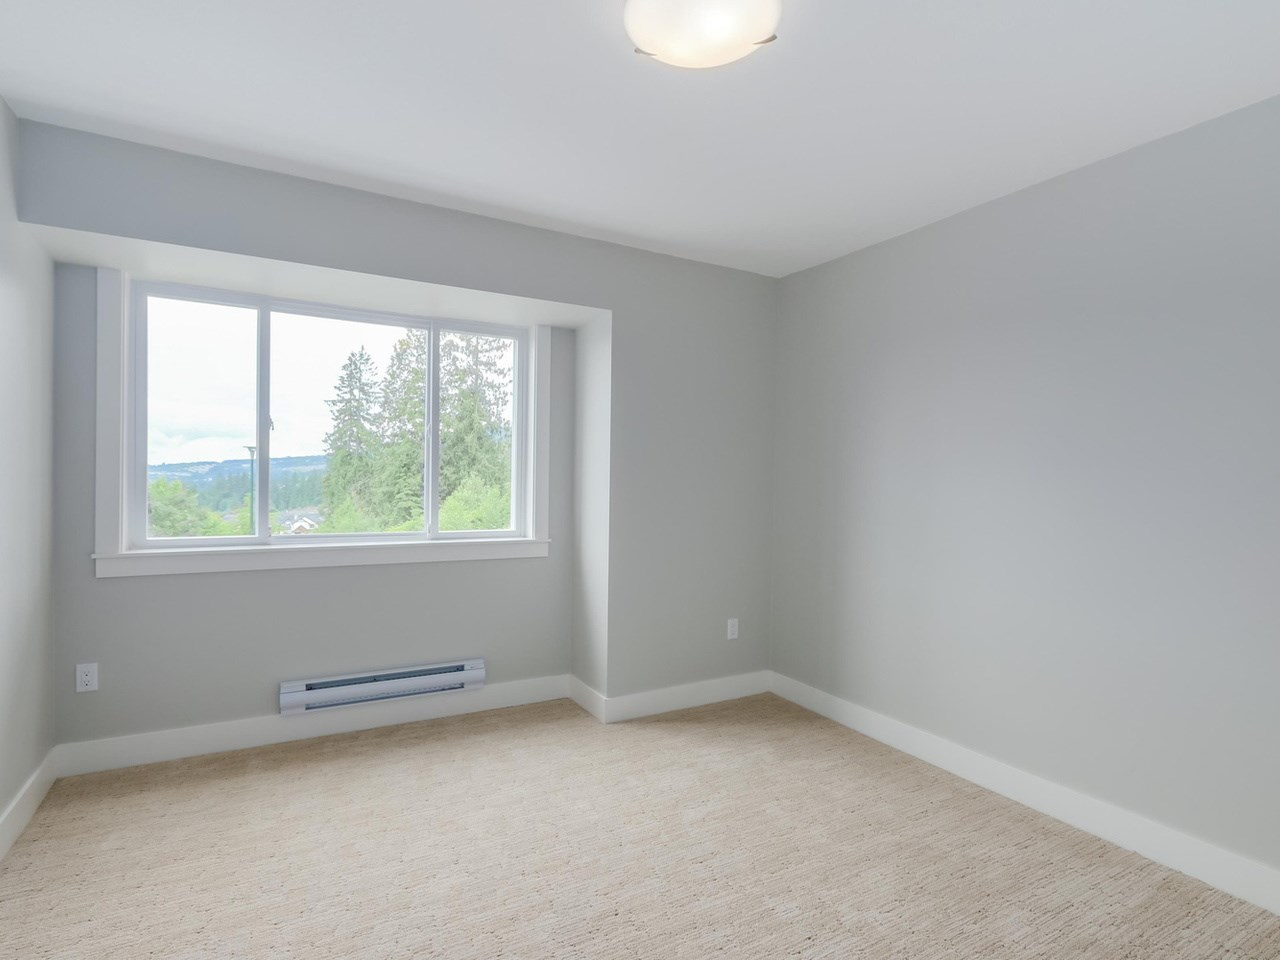 "Photo 13: 303 1405 DAYTON Street in Coquitlam: Burke Mountain Townhouse for sale in ""ERICA"" : MLS® # R2119298"